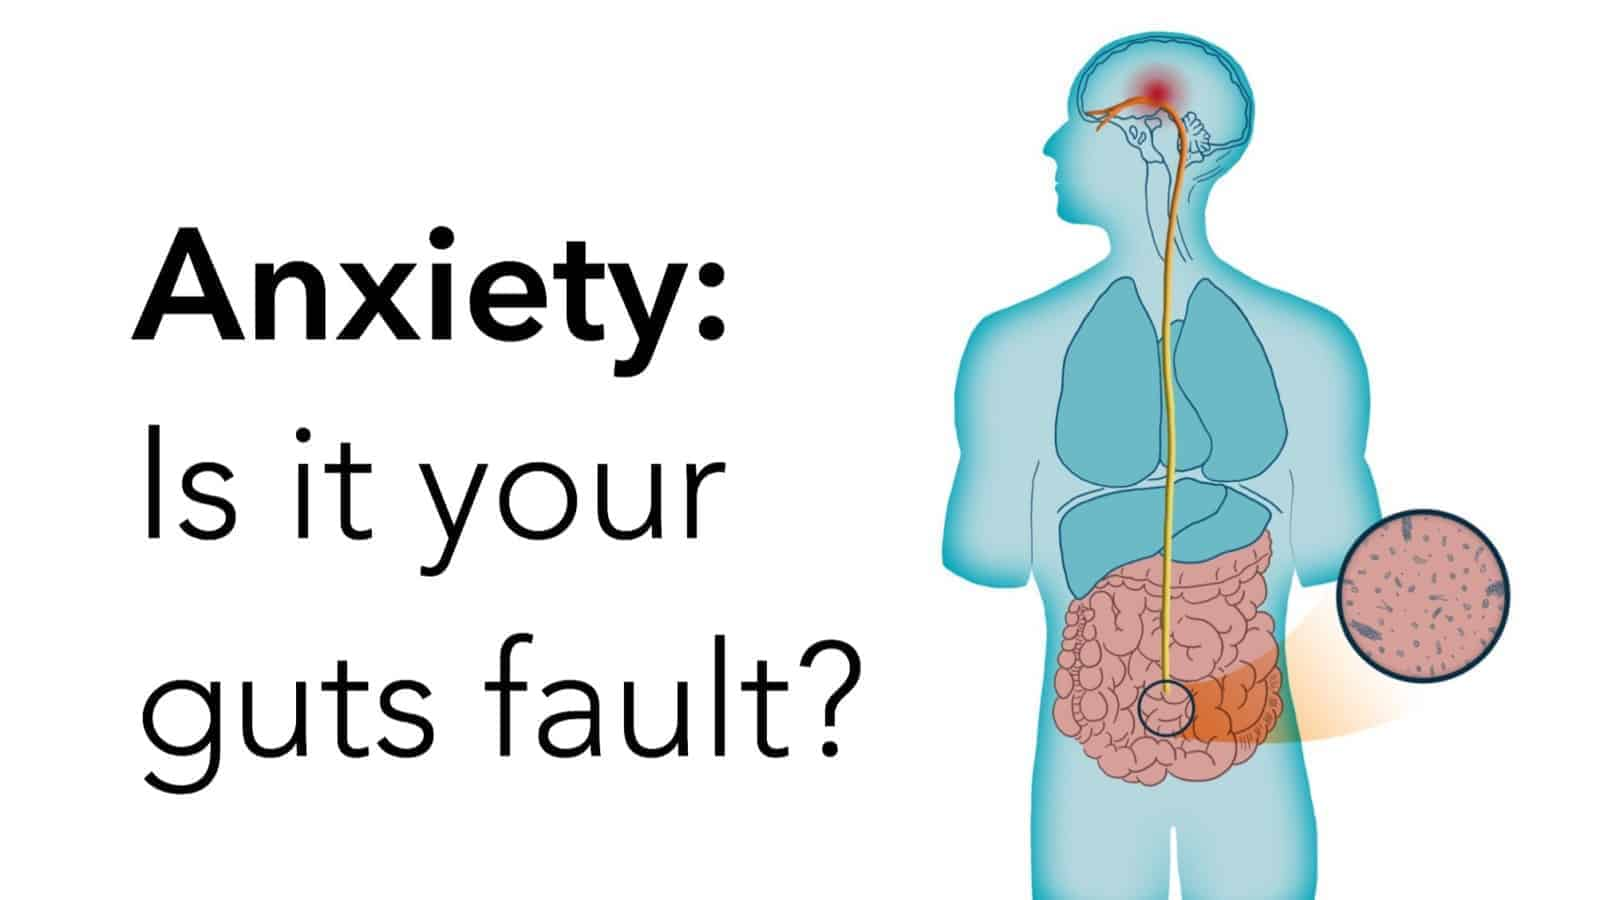 Researchers Explain How Your Gut Bacteria Causes Anxiety, According to Science